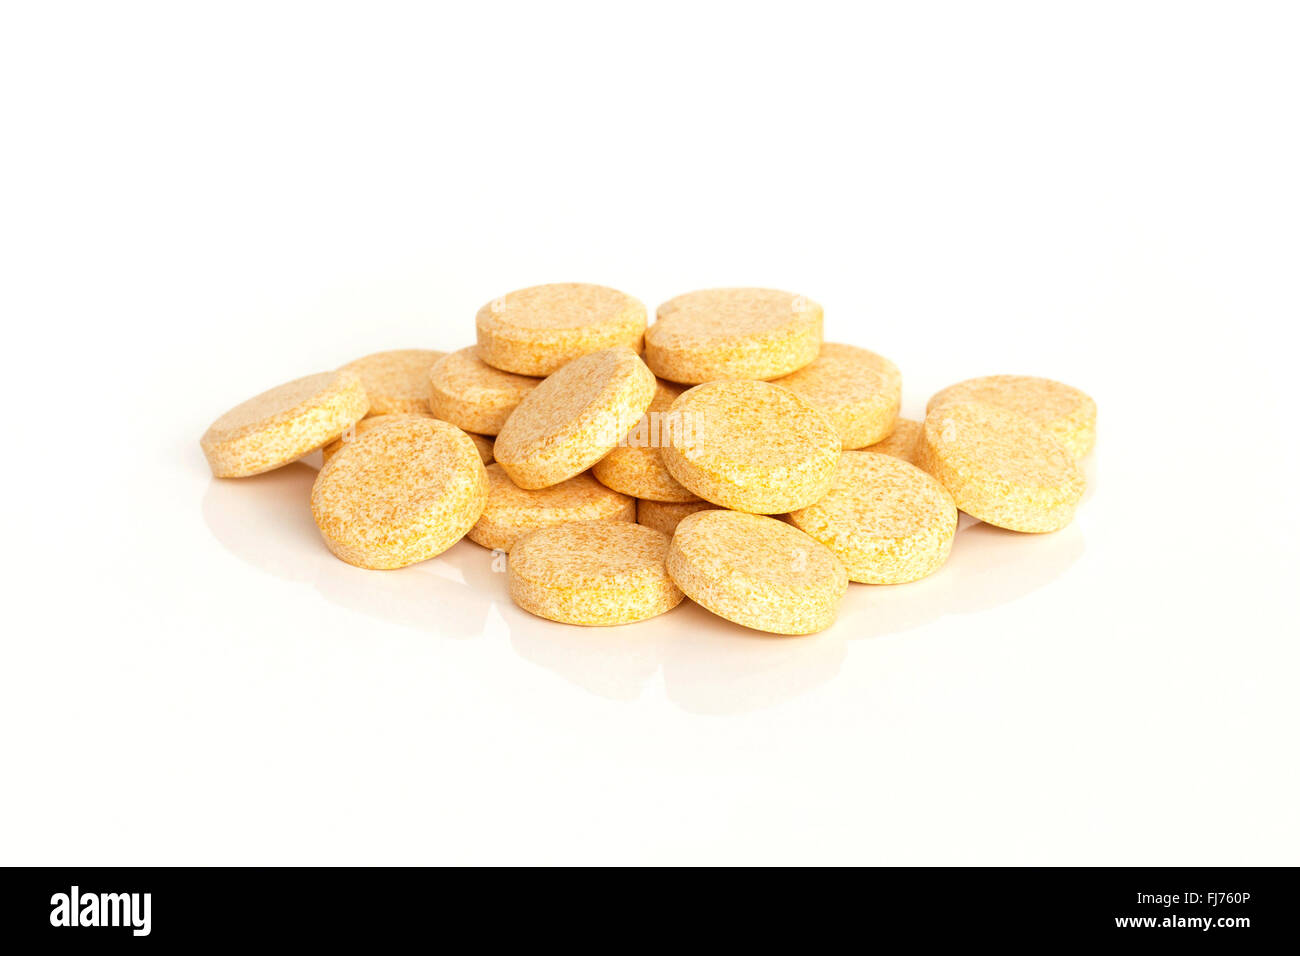 A pile of vitamin C supplement tablets isolated on a white background. - Stock Image